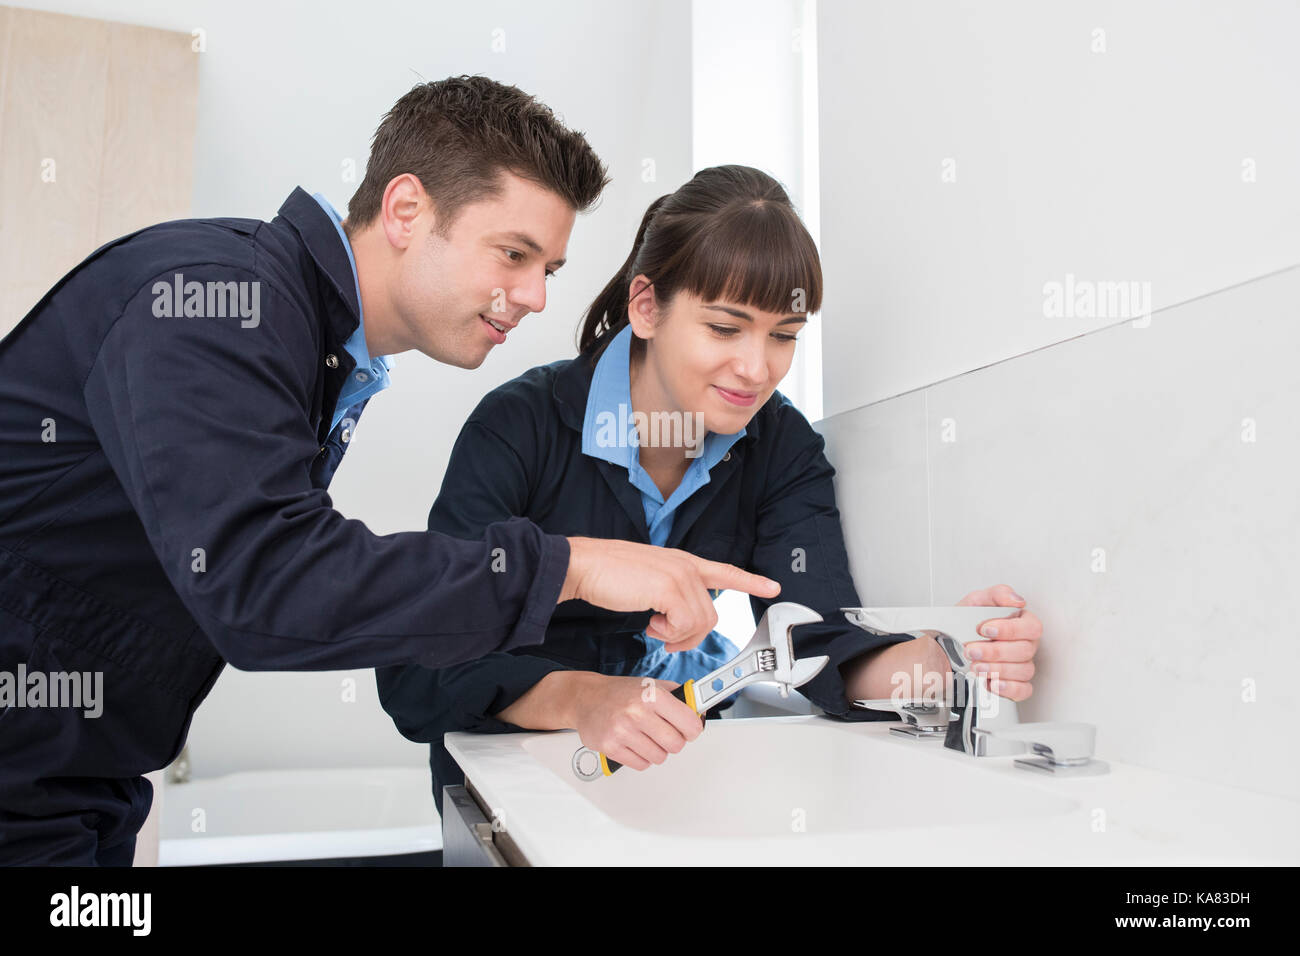 Female Trainee Plumber Working On Tap In Bathroom - Stock Image